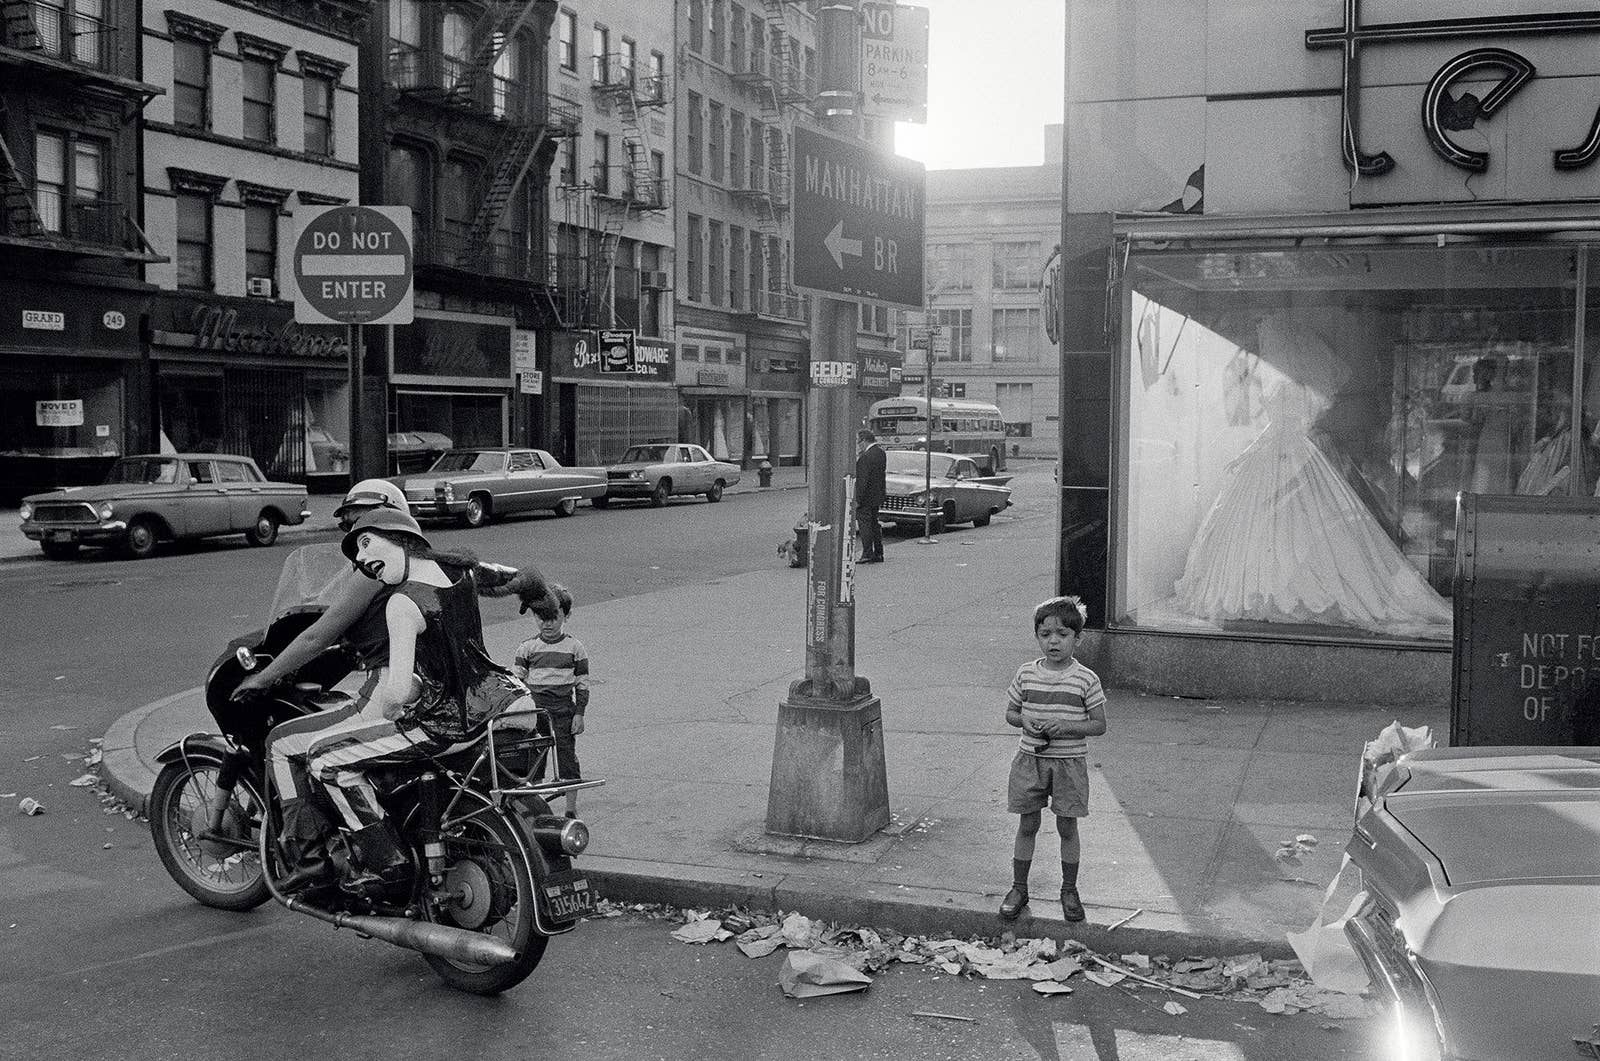 Two boys standing on the sidewalk watch a motorcycle drive by